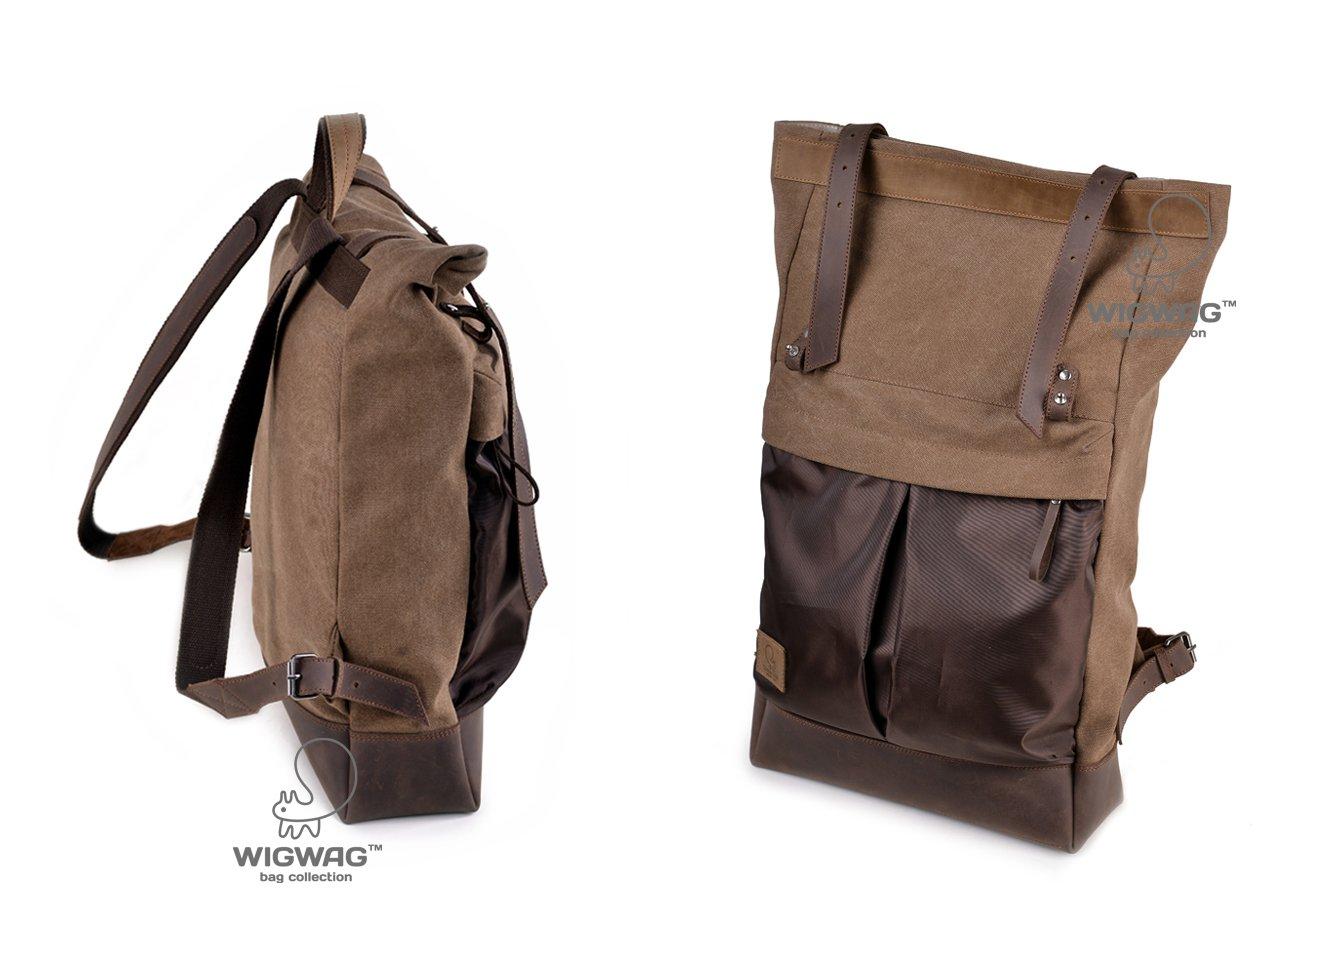 Roll Top backpack, canvas leather backpack, roll backpack, hipster backpack, laptop backpack, men's rucksack